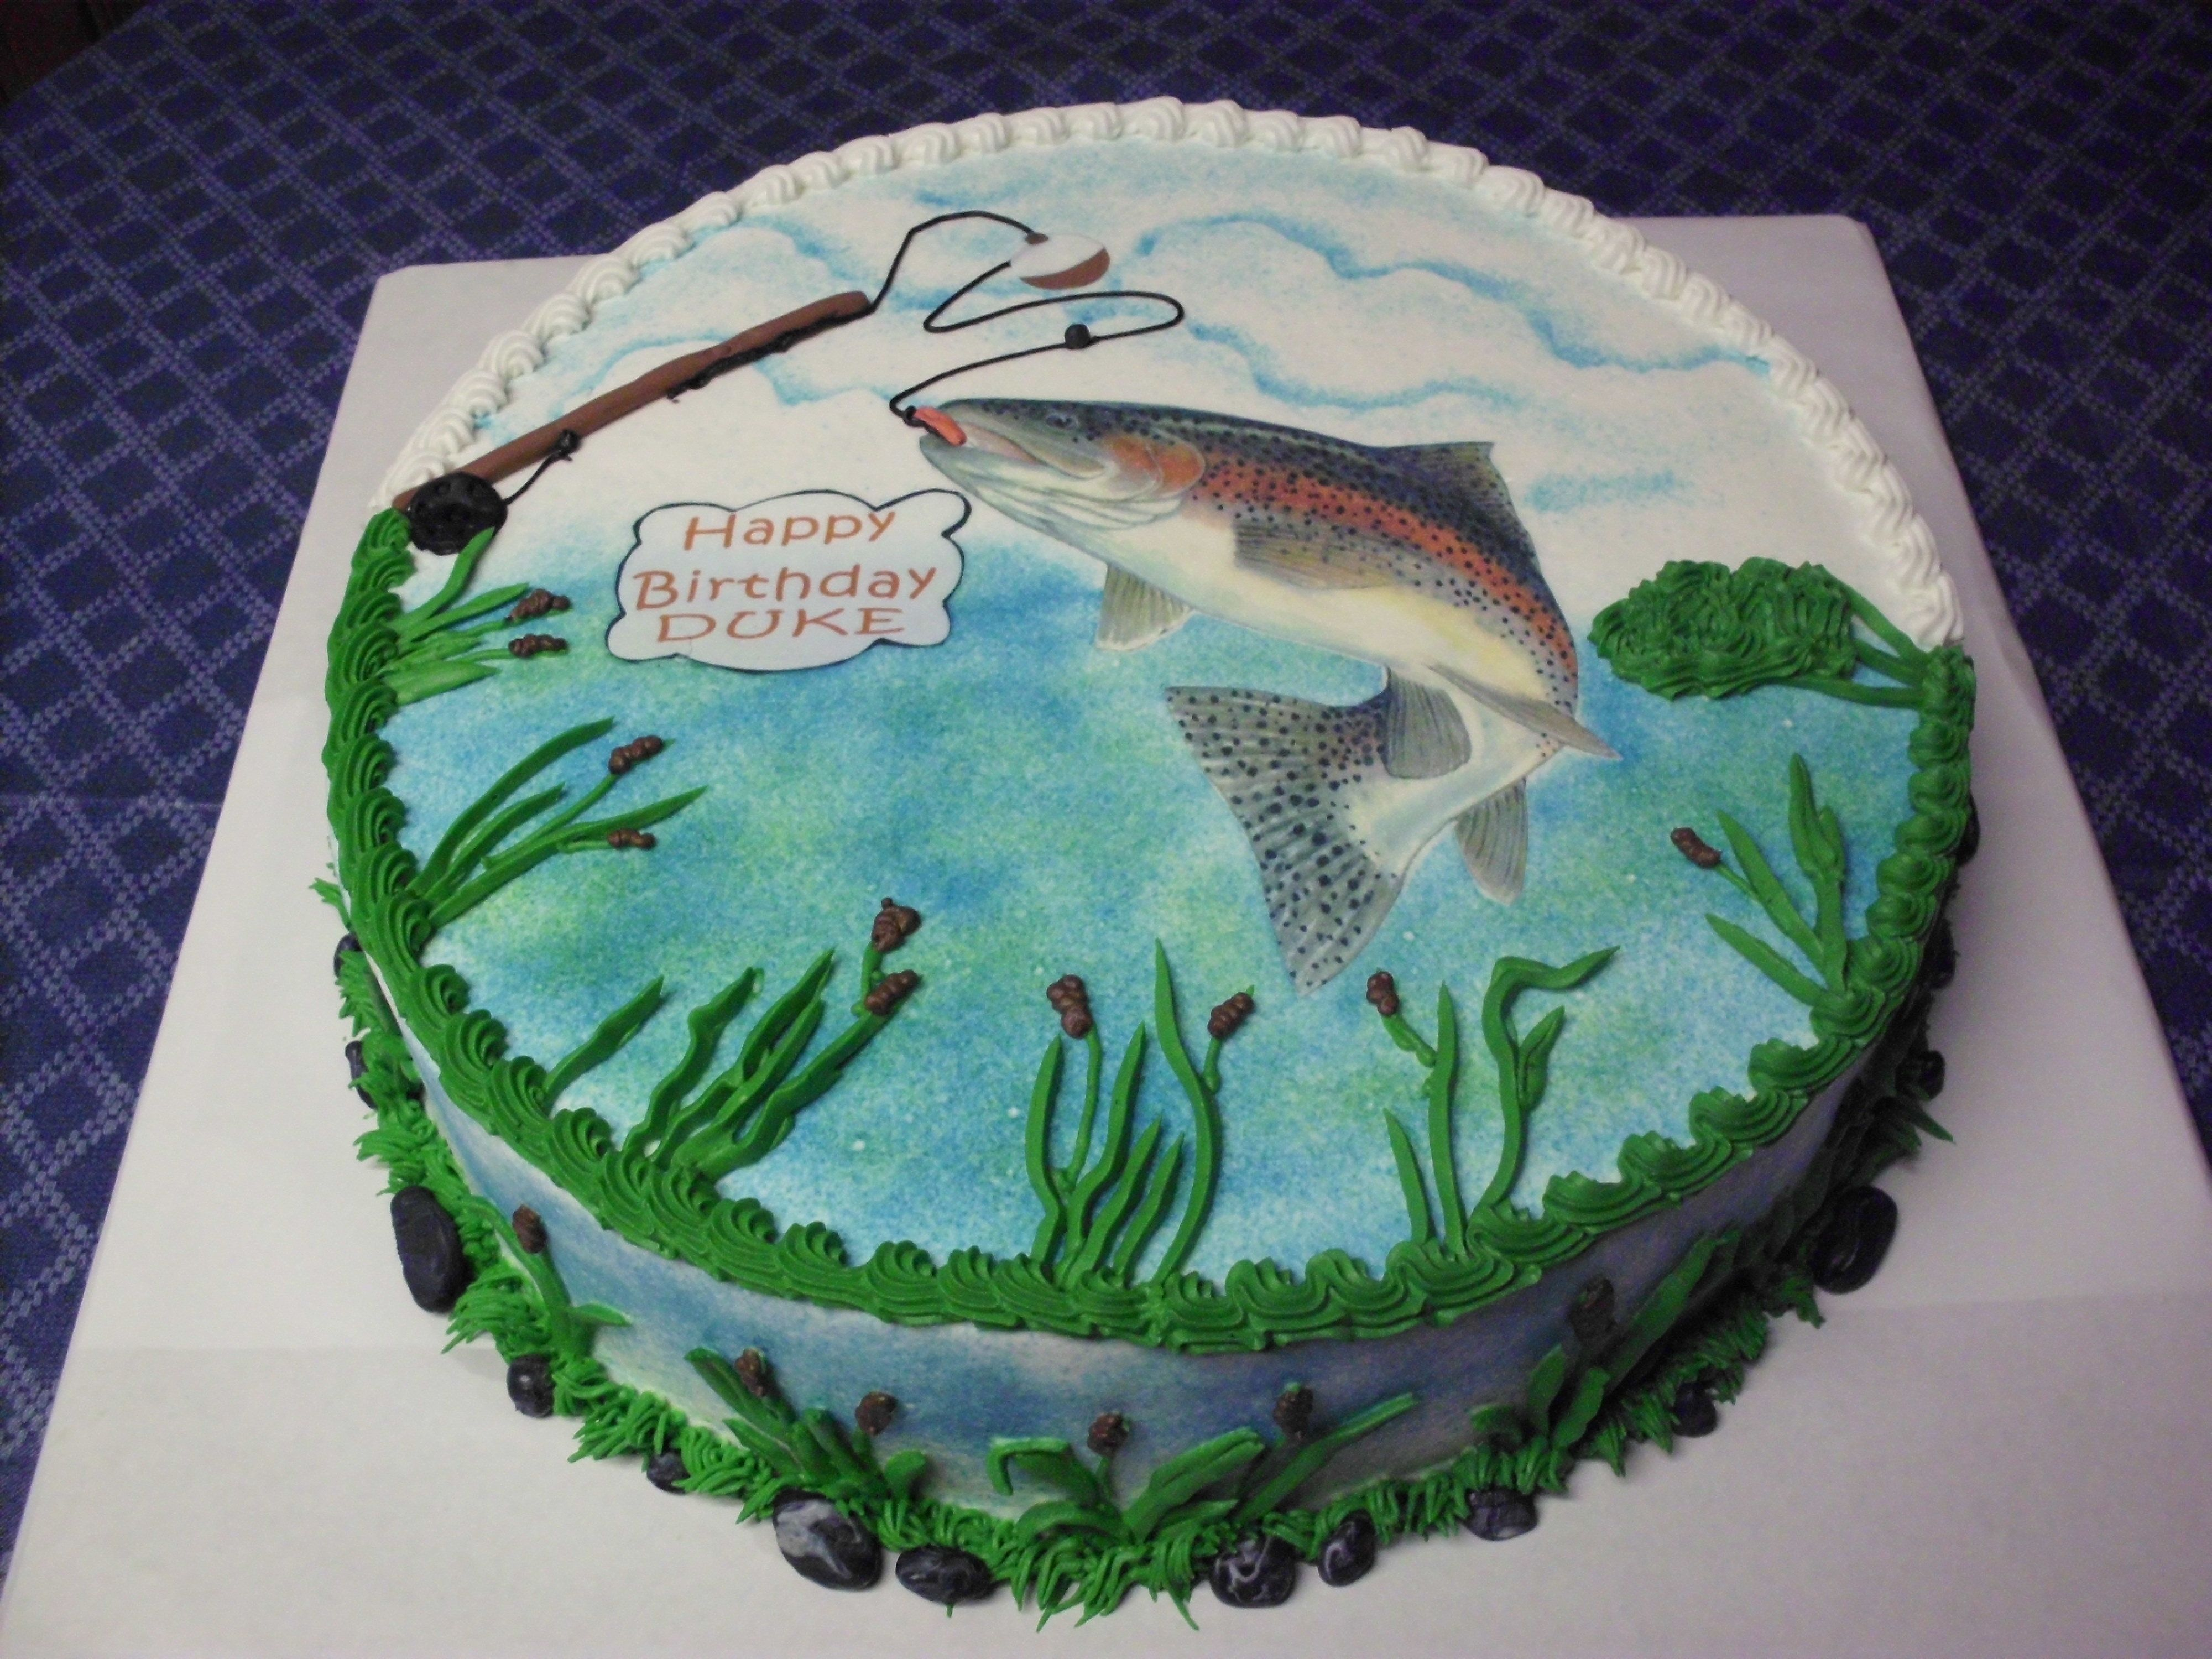 Rainbow Trout Birthday Cake - Rainbow Trout is an edible image ...